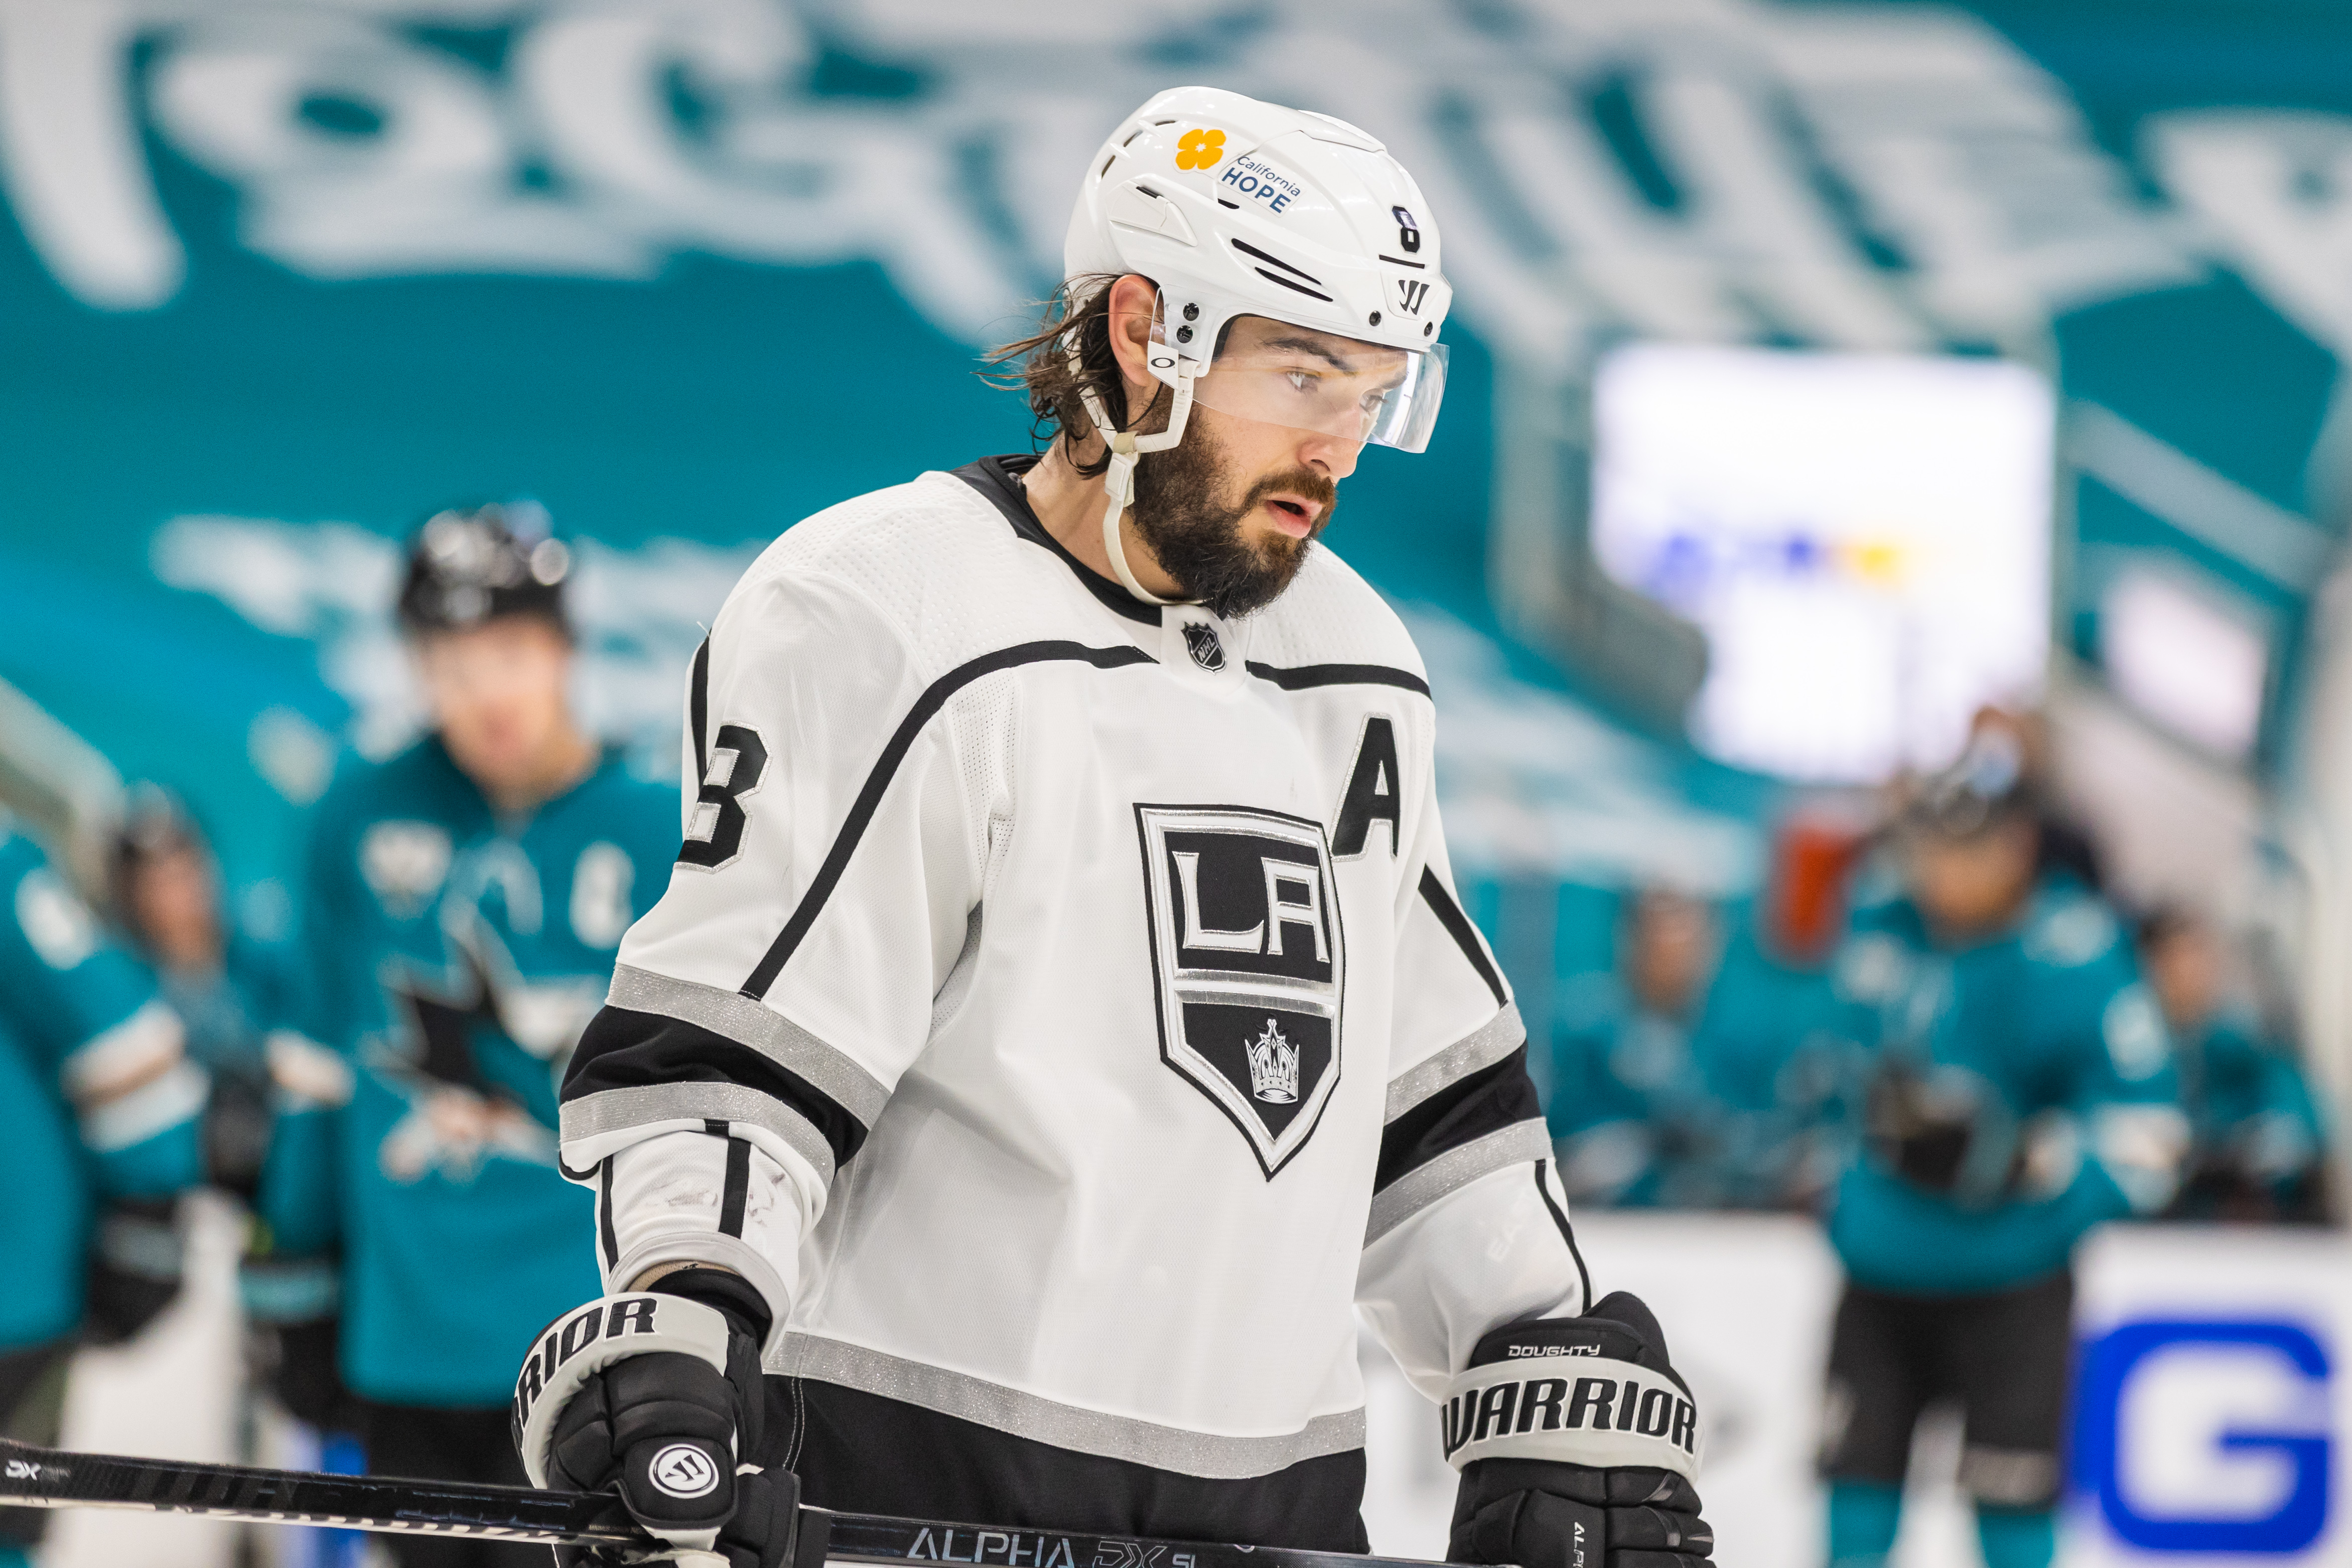 Los Angeles Kings Defenceman Drew Doughty (8) looks dejected during the NHL hockey game between the Los Angeles Kings and San Jose Sharks on March 24, 2021 at SAP Center in San Jose, CA.